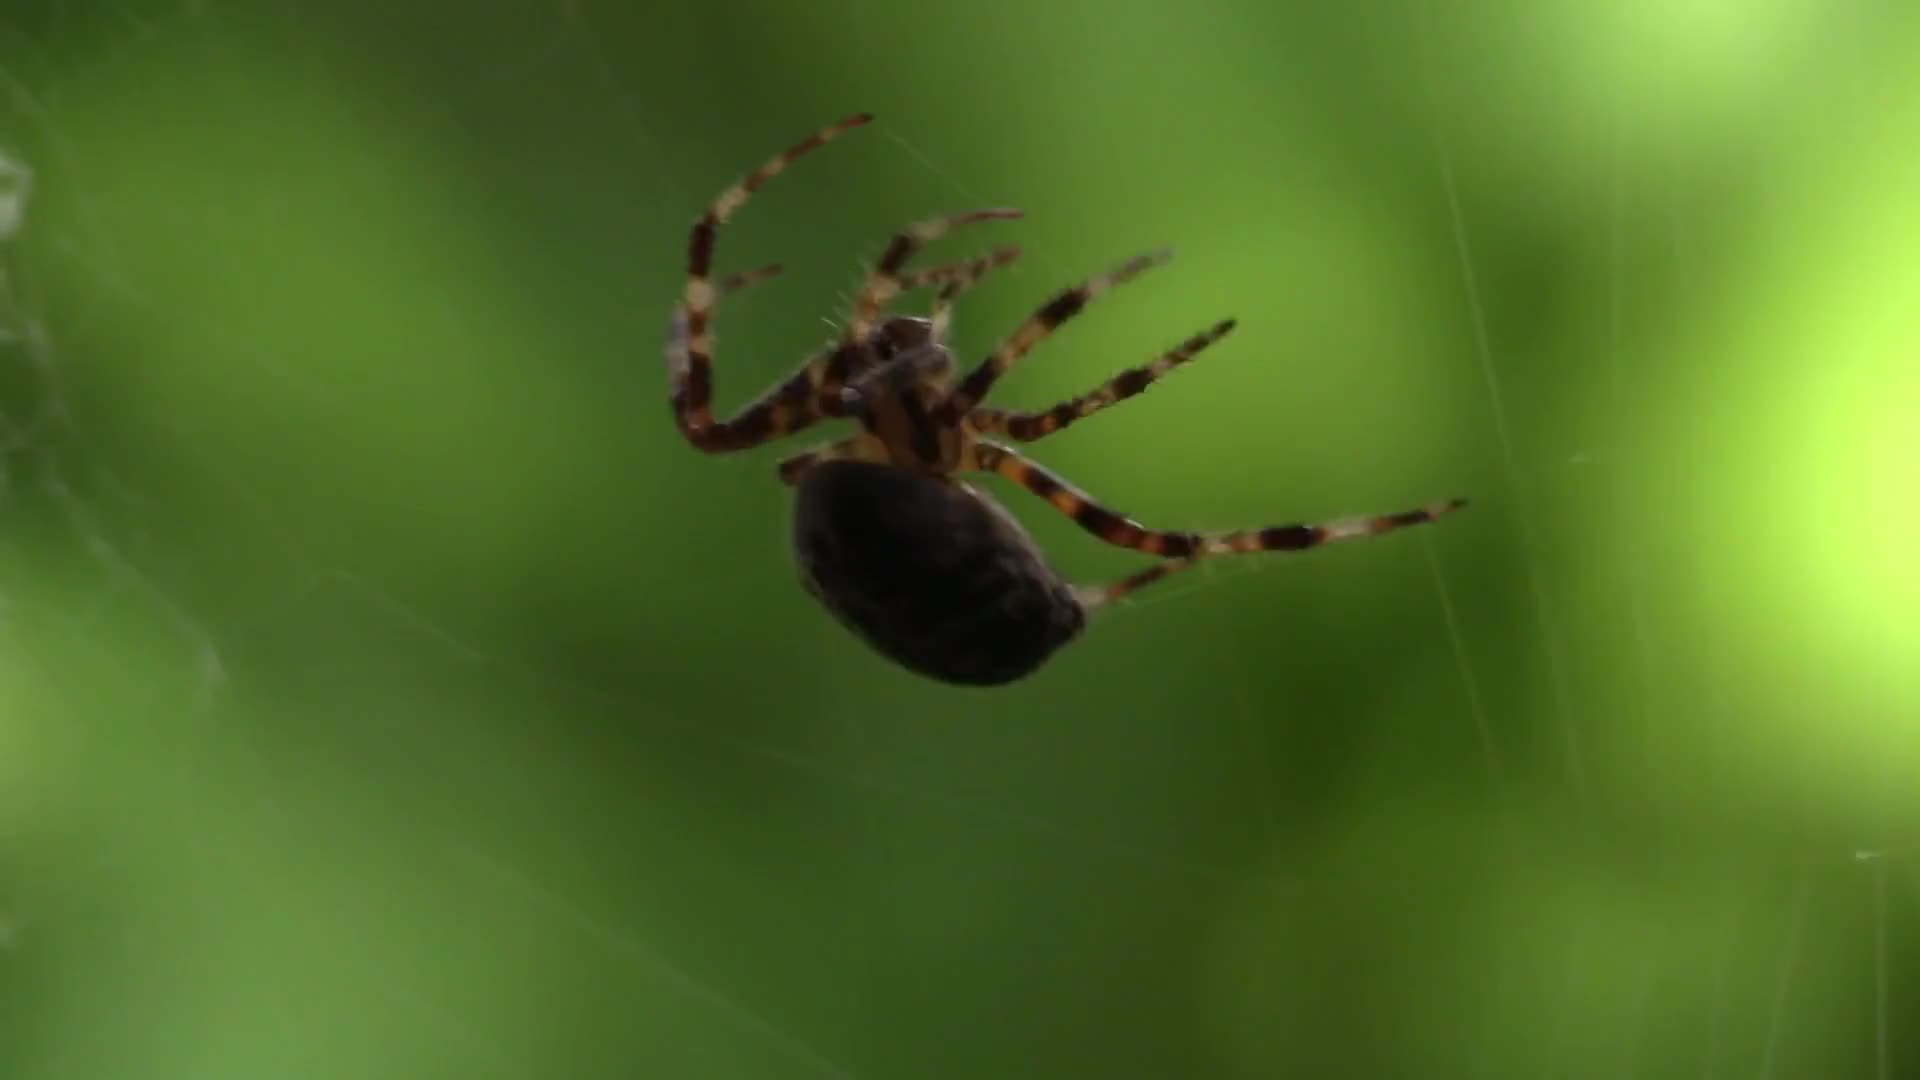 Video of spider